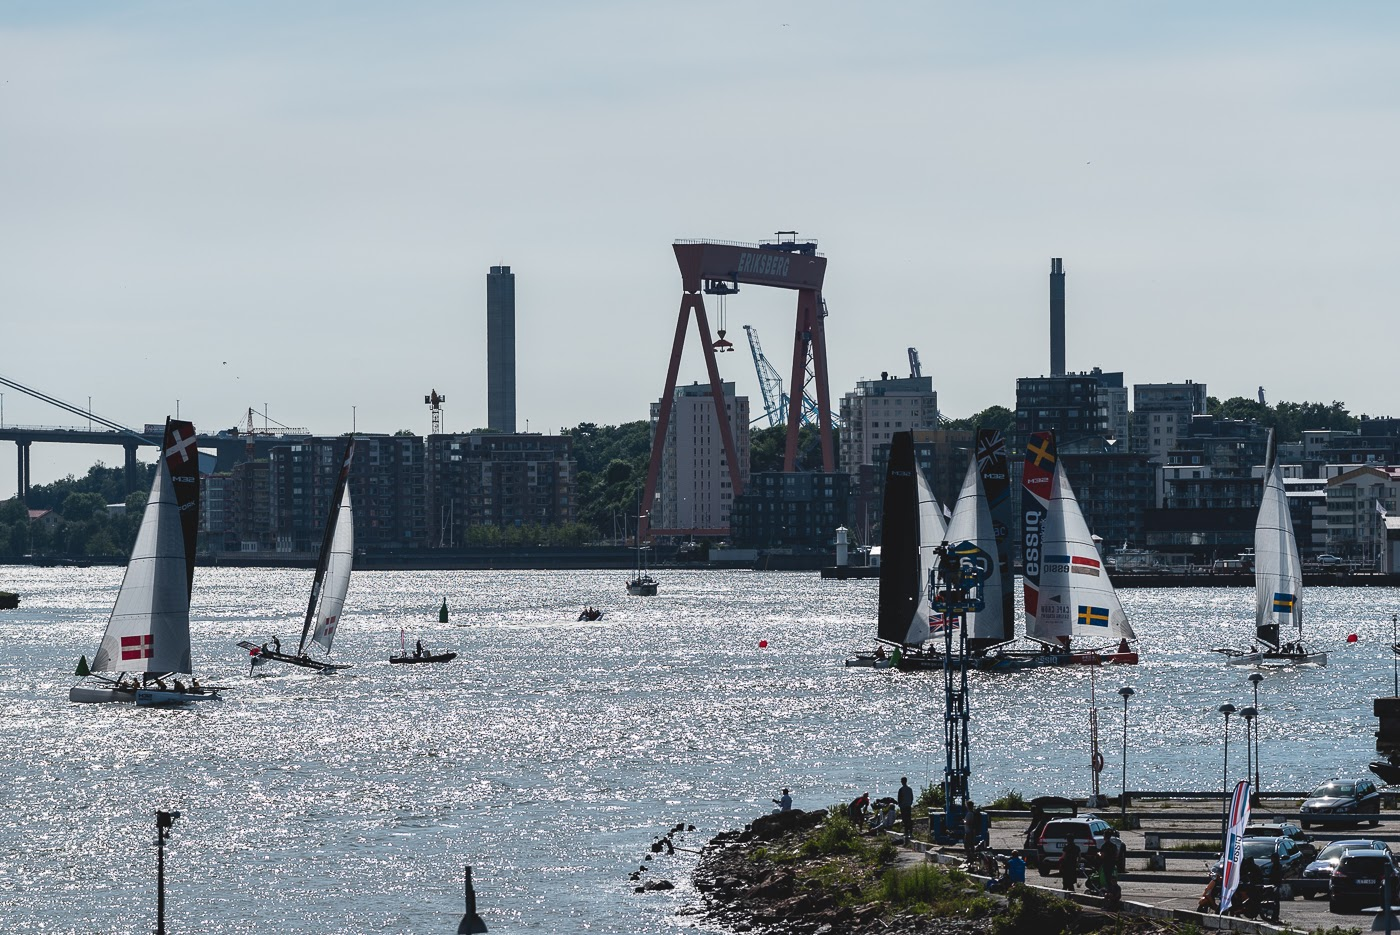 Wallén Racing Take Early Lead in M32 Series Scandinavia